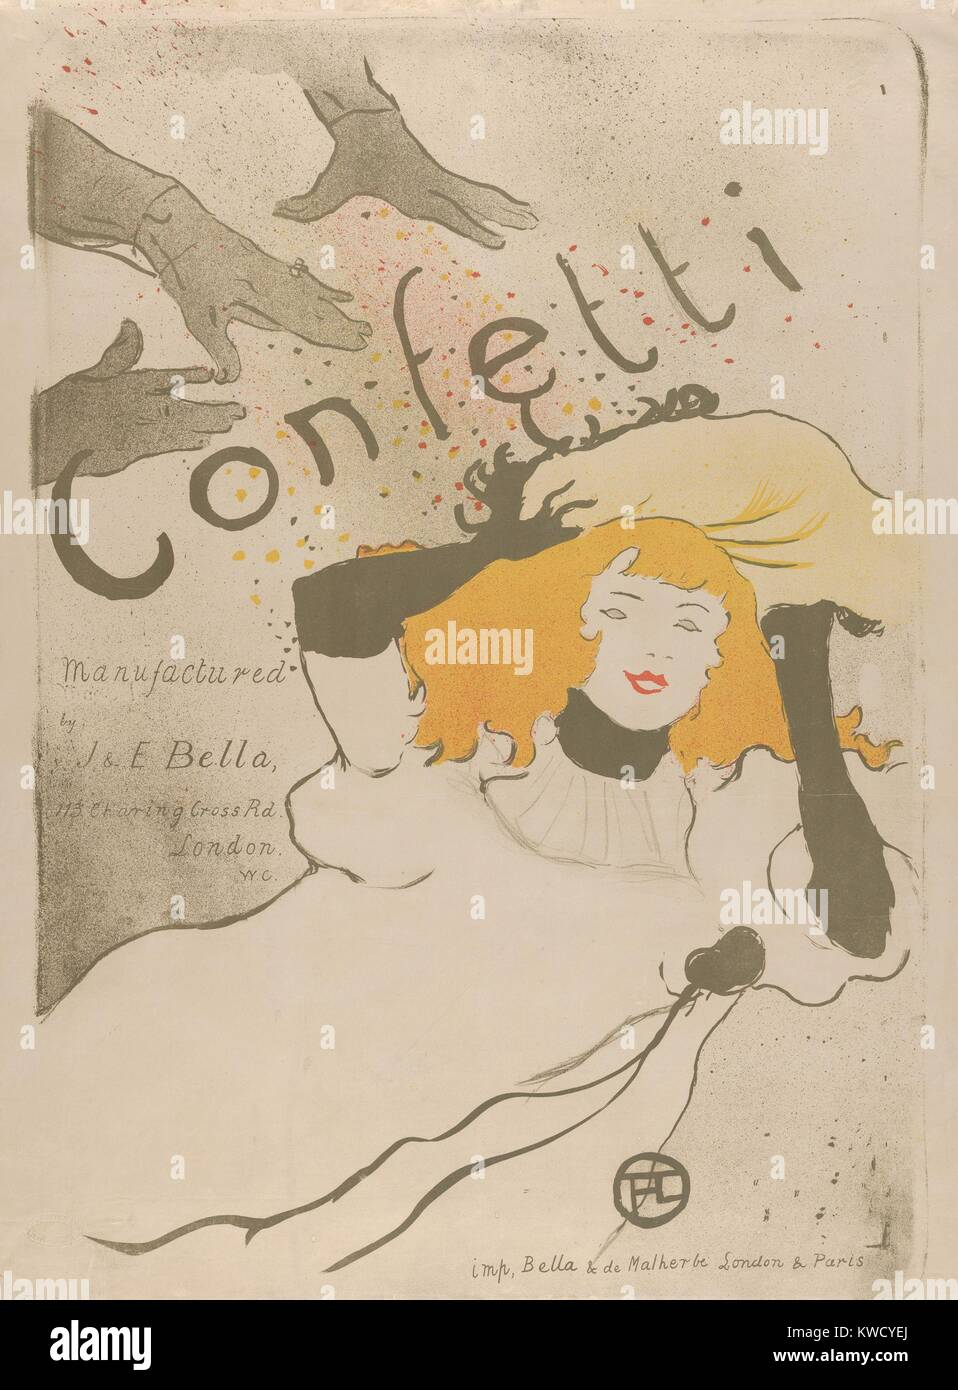 Confetti, by Henri de Toulouse-Lautrec, 1894, French Post-Impressionist, lithograph. This is an advertising poster - Stock Image